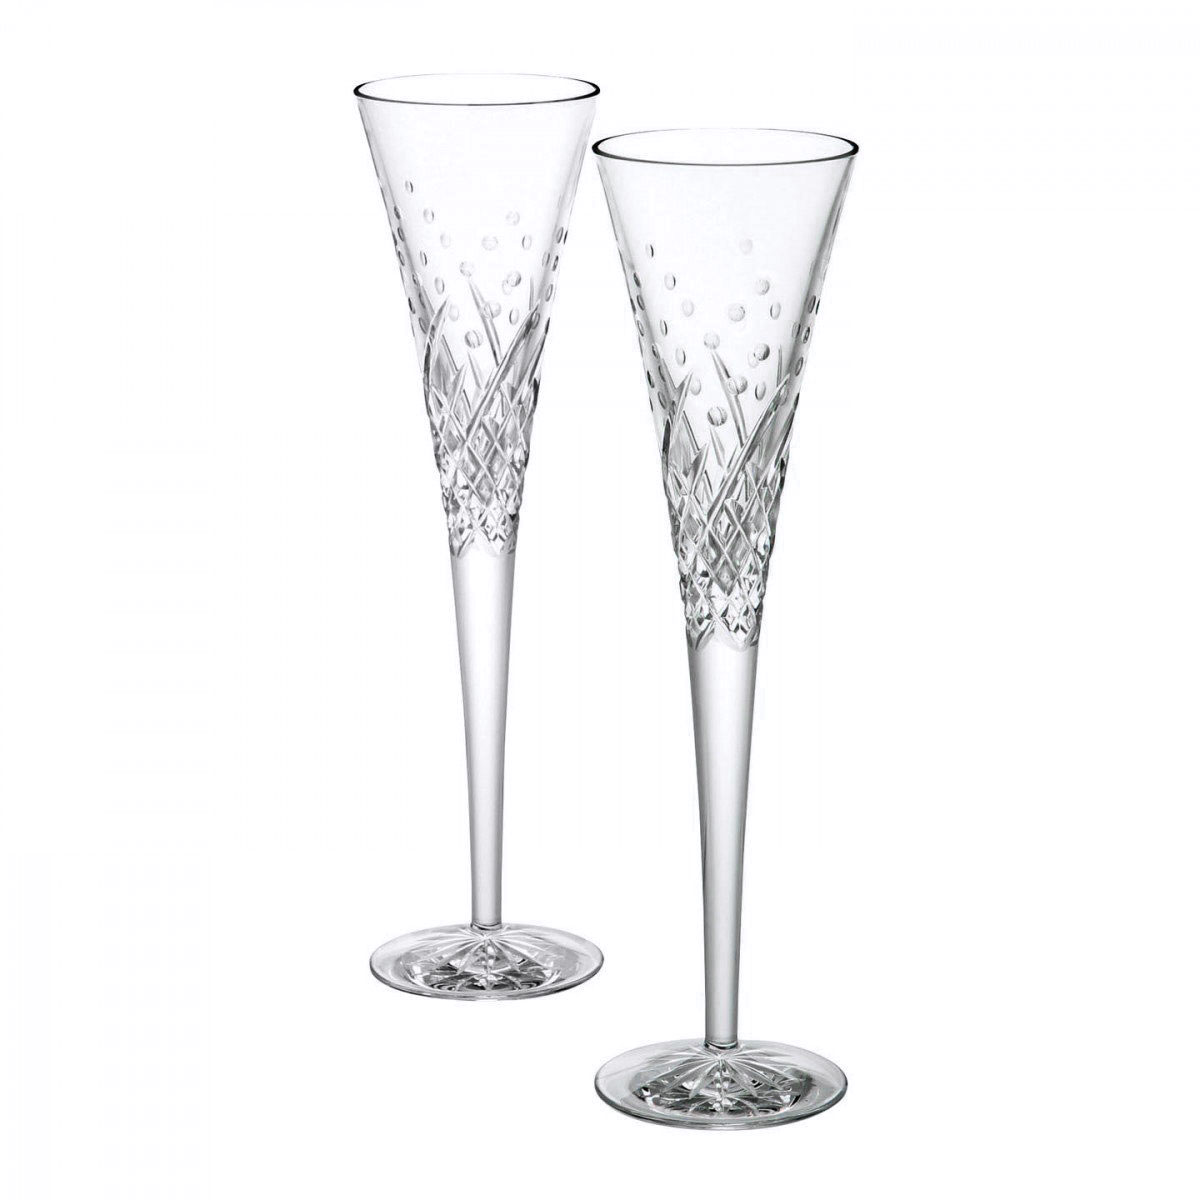 Waterford Crystal, Wishes Happy Celebrations Flutes, Pair